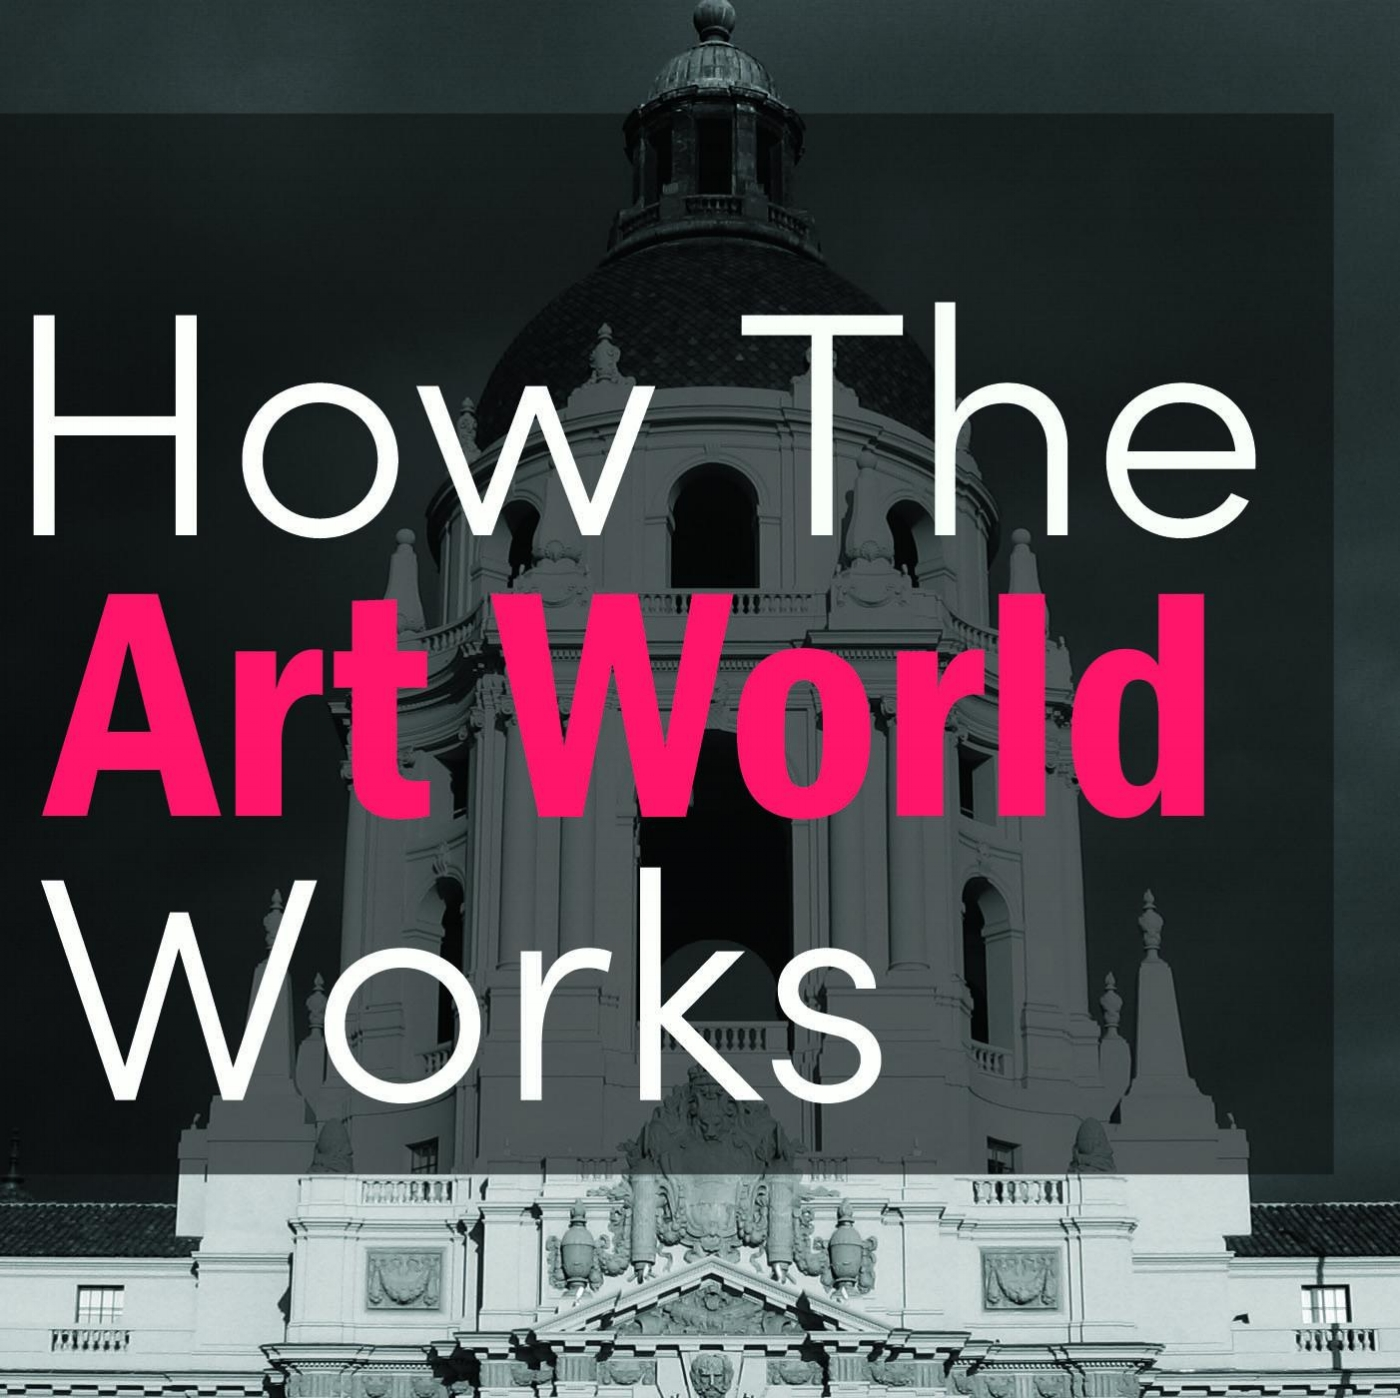 "Artist Anne Bray and LA Freewaves - This episode: Karen and Megan sit down to interview the amazing Anne Bray and discover why the Pasadena City Hall is covered in ...lions?#LAFreewaves #NoogiesInTheArm #ChrisBurden #MFAempathy #SelfTeachingGroups #CatastropheOfStudentLoans #PublicArt #Metro #PawneeCityHall #SideStreetProjects #LACEThank you again to our guest, Anne Bray, you can find her work at www.annebrayart.comAnd to Side Street Projects which can be found at www.sidestreet.orgLos Angeles Contemporary Exhibitions is the ""LACE"" we refer to so lovingly in this episode and they can be found at www.welcometolace.org.All of this and more is on our website, www.artworldpodcast.comAnd while you're there, please consider donating to our Patreon page. For as little as a dollar you can help us offset the costs of research and production of this podcast and allow us the flexibility to make more episodes ….and we would really appreciate it. Join a community of other Artworld Amigos and check it out patreon.com/artworldpodcast"